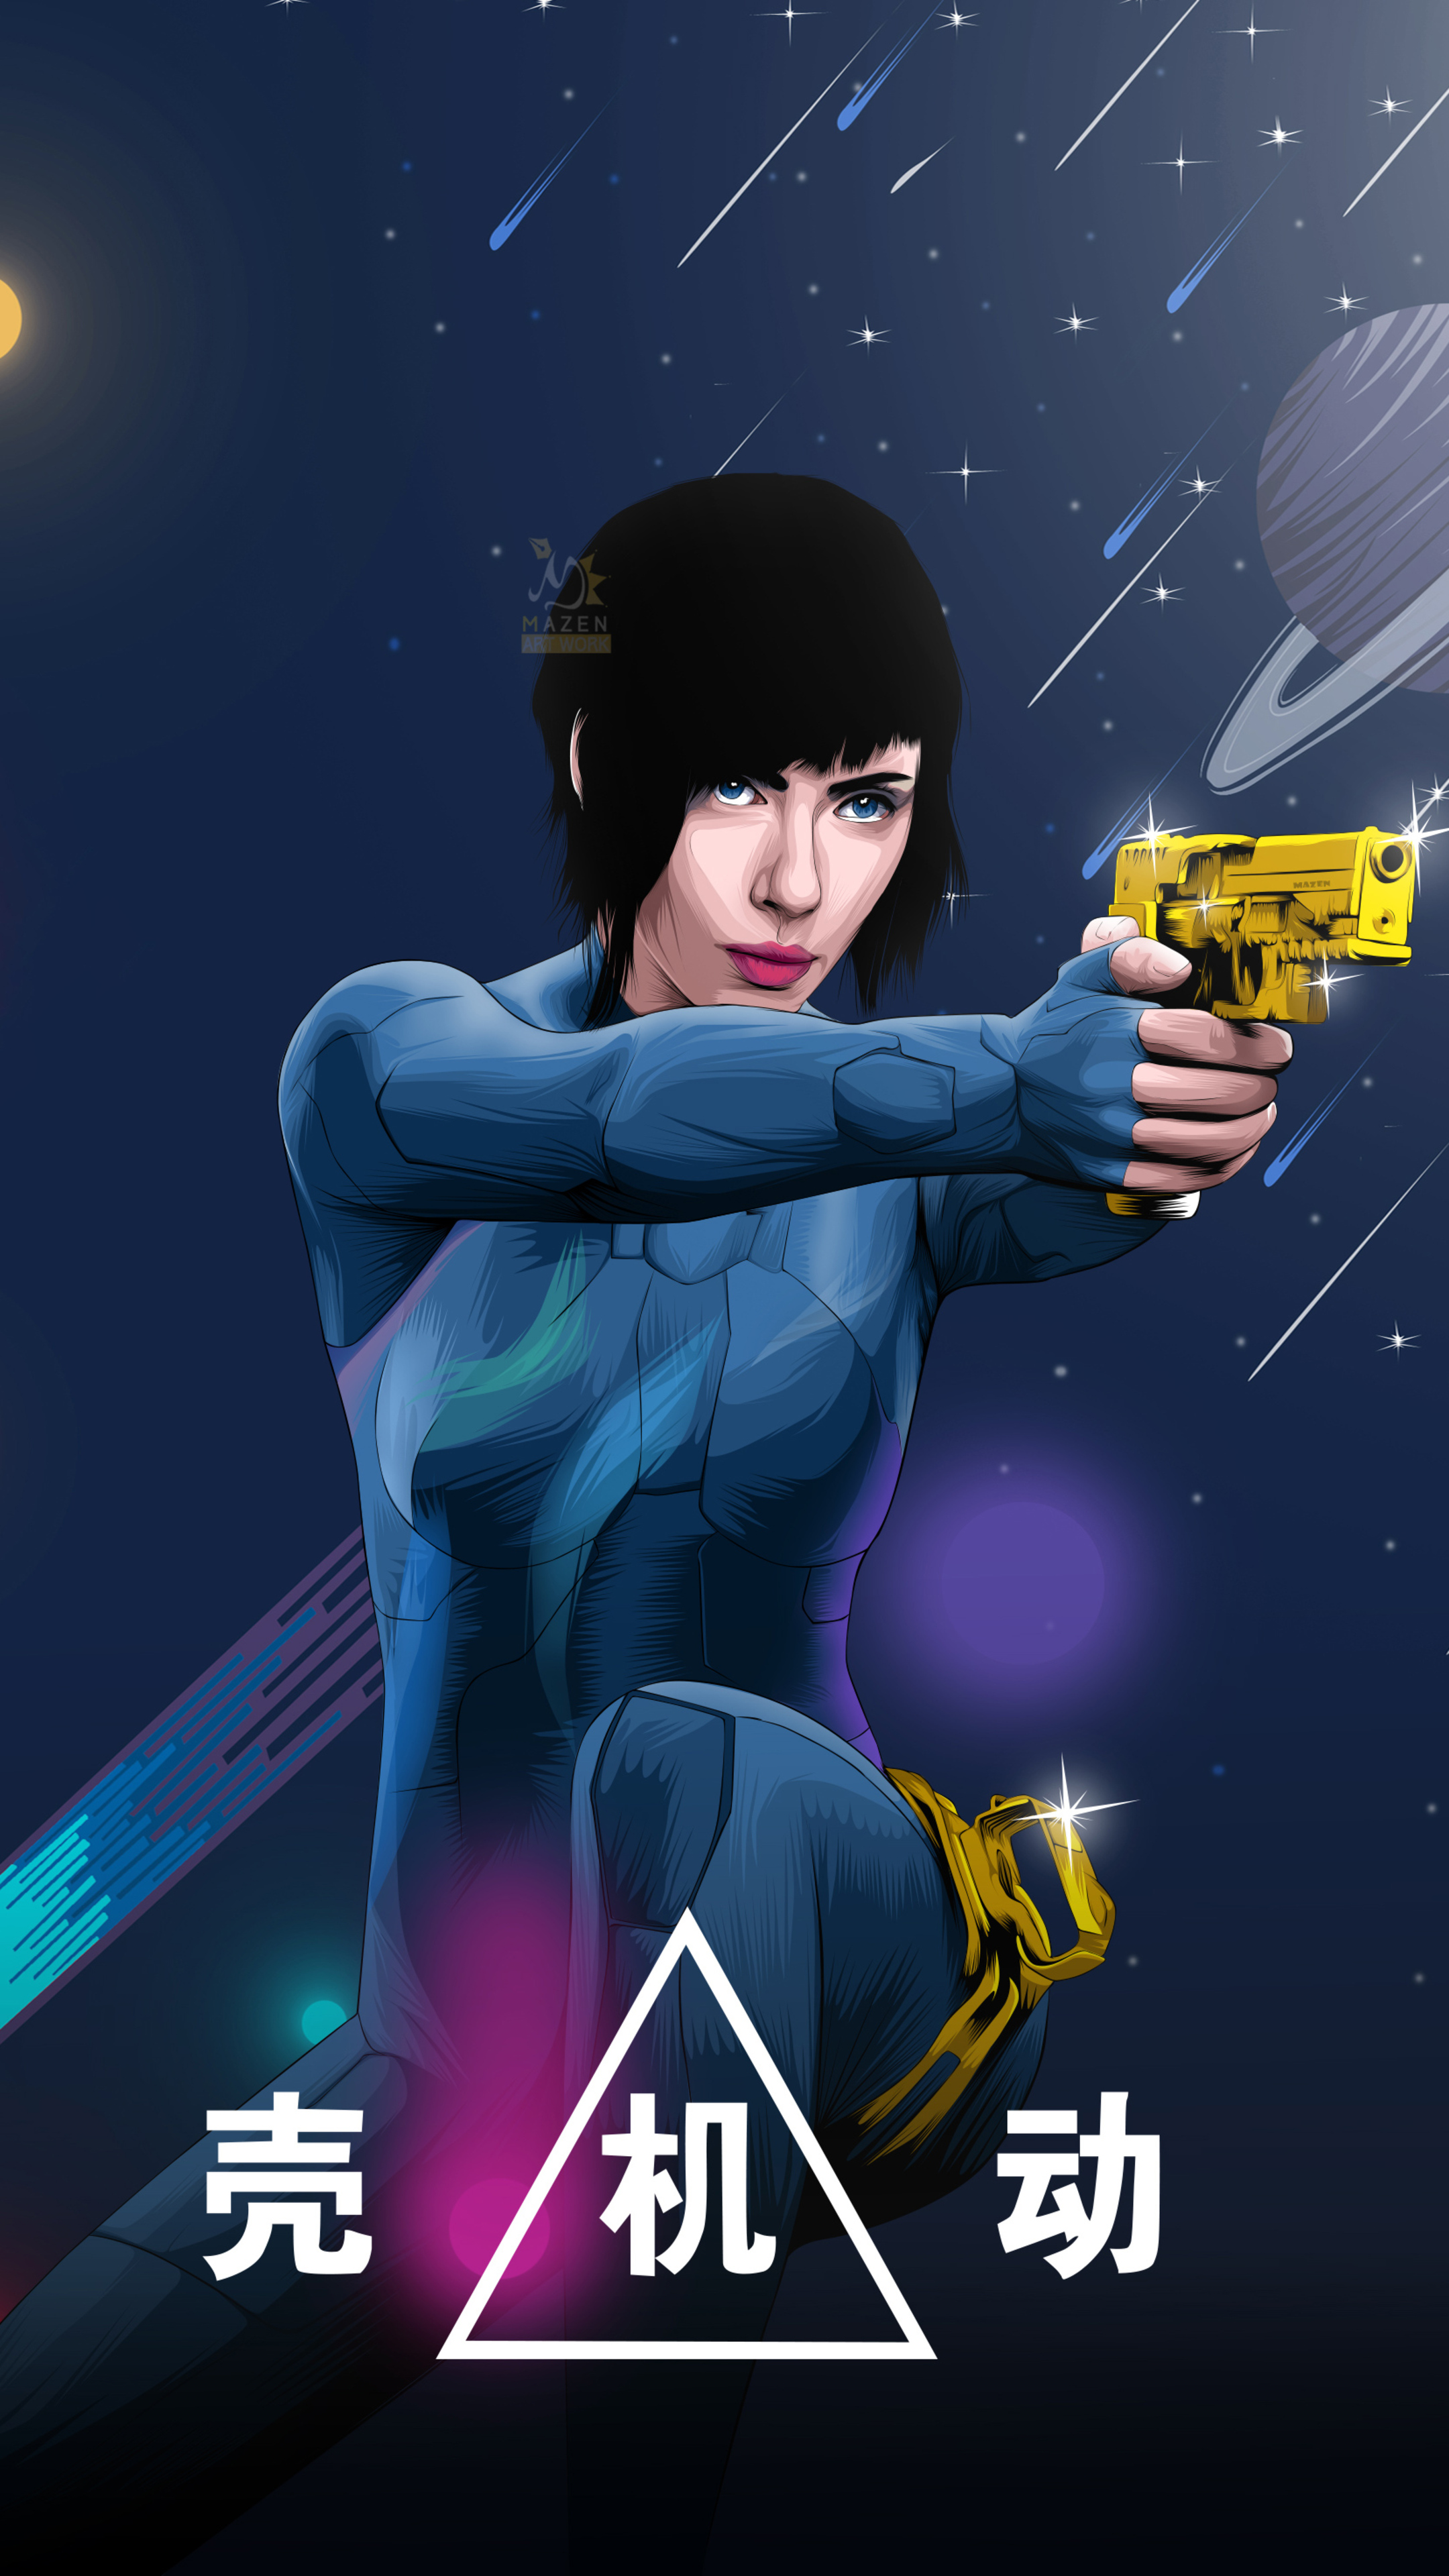 ghost-in-the-shell-fanart-b7.jpg